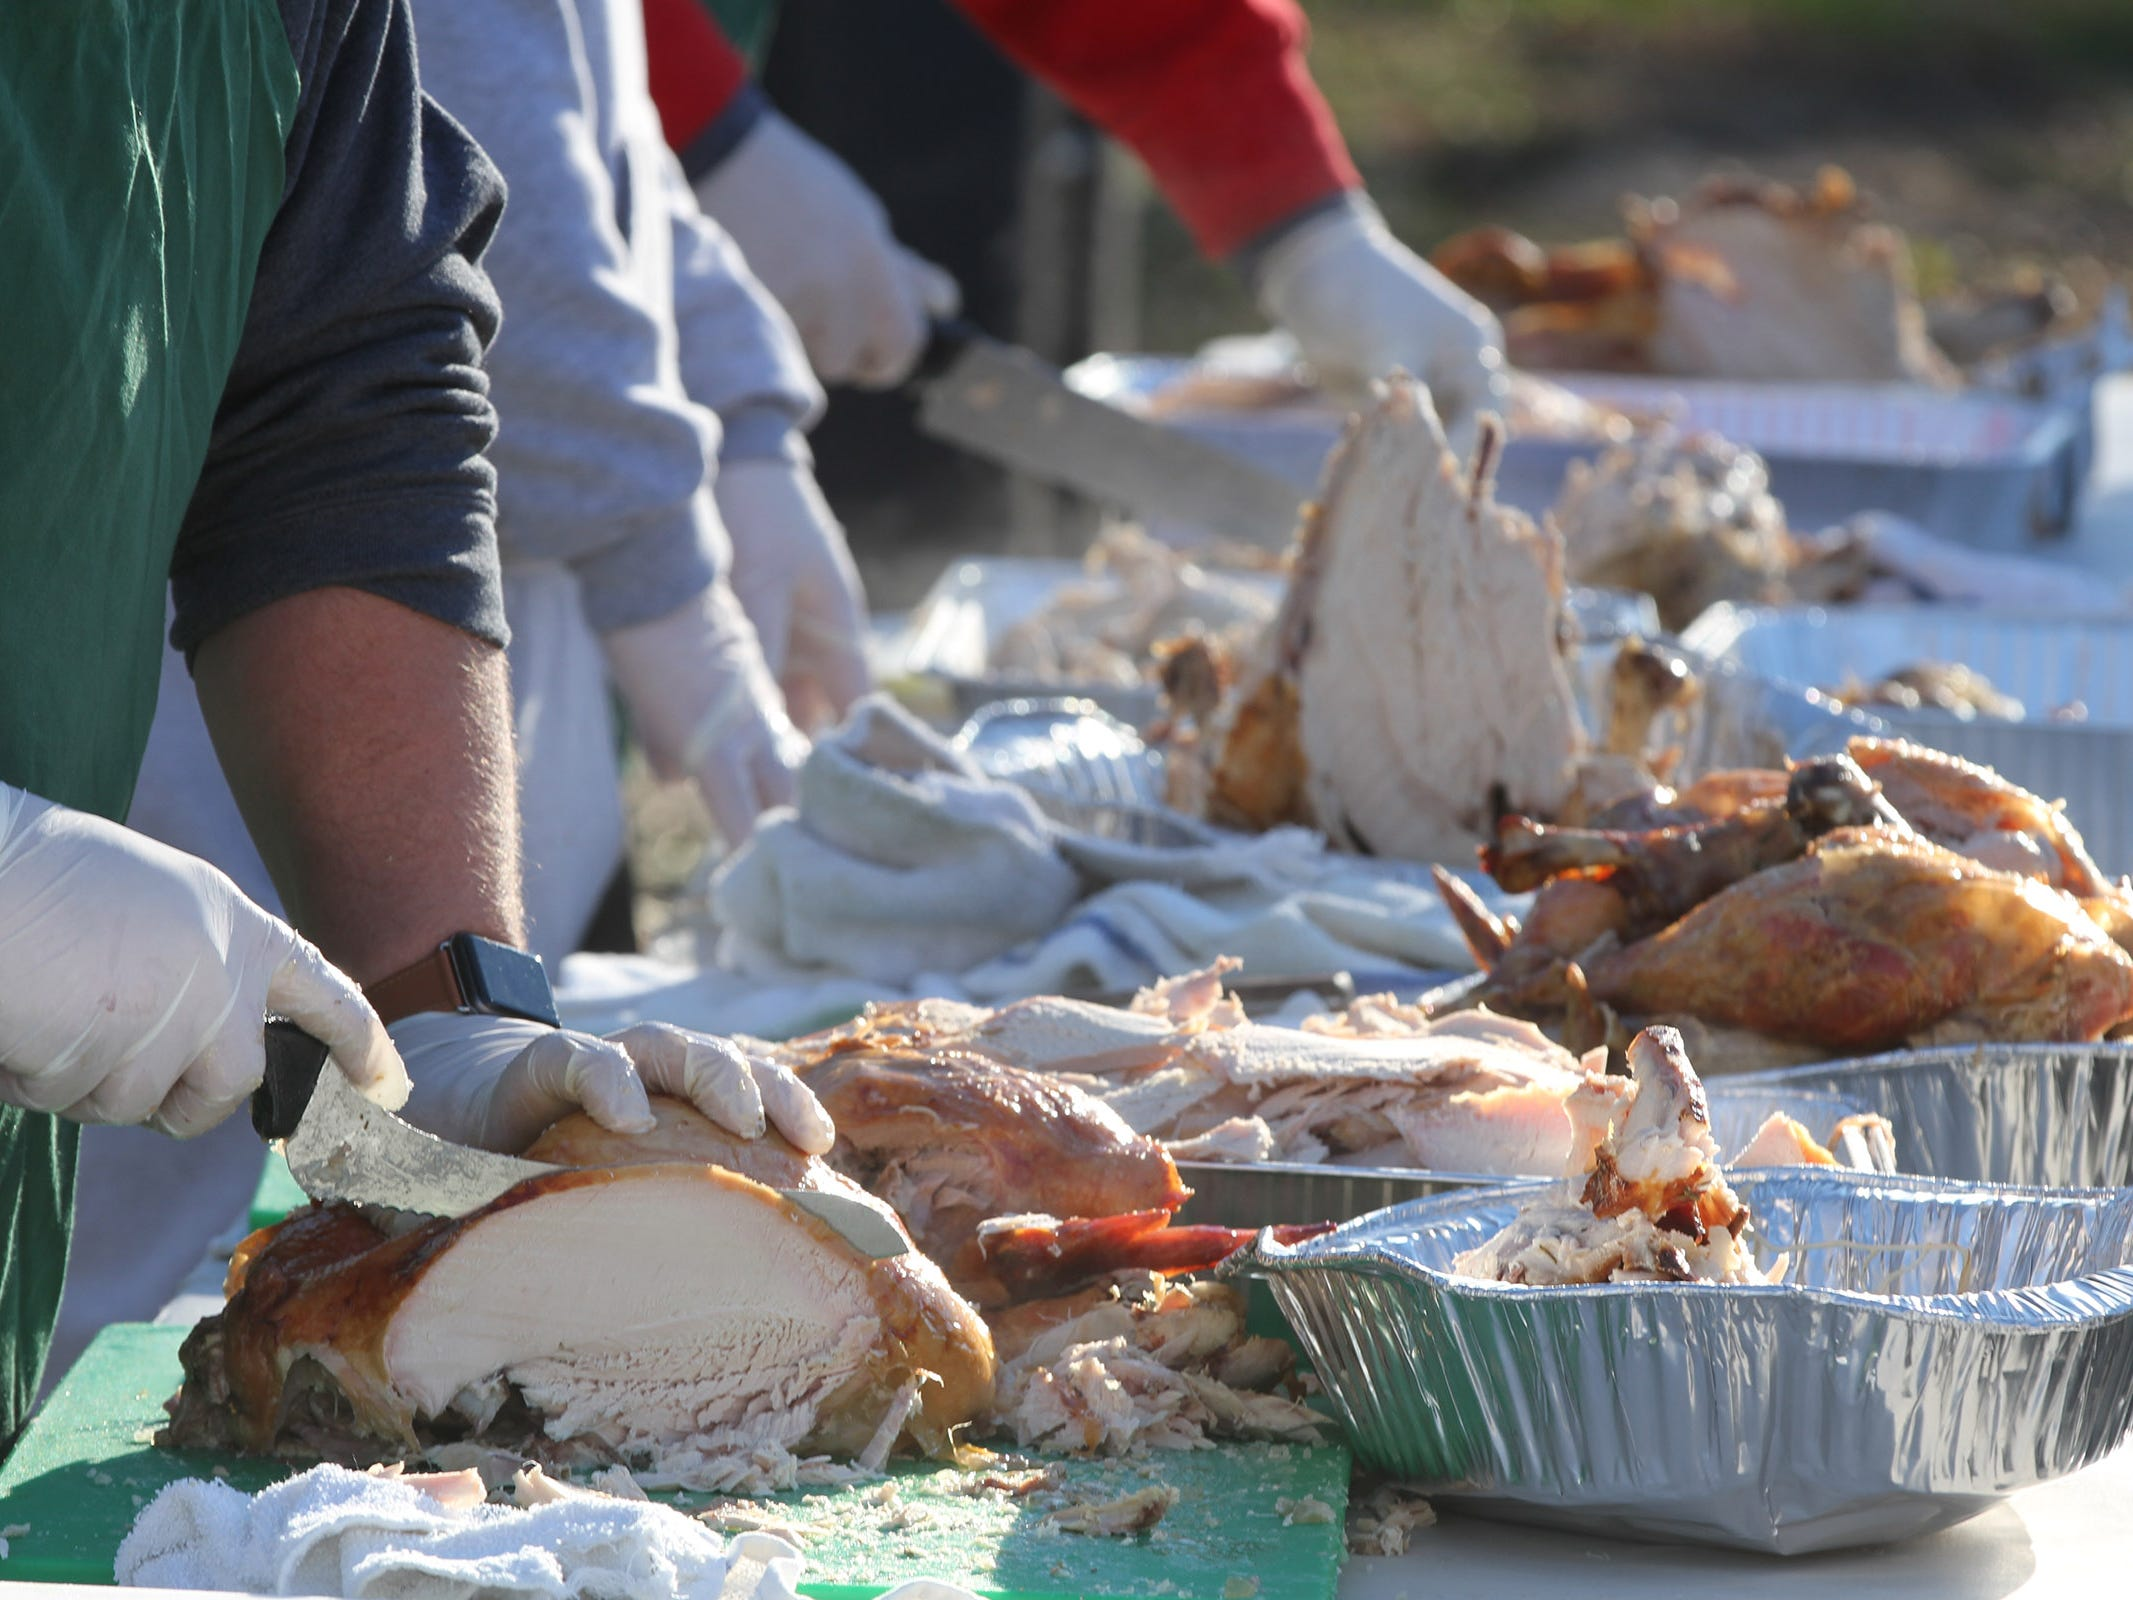 Turkeys are sliced at The Church of the Epiphany in Brick as they prepare and deliver meals to over 1,200 people in Monmouth and Ocean counties on Thanksgiving Day, November 22, 2018.